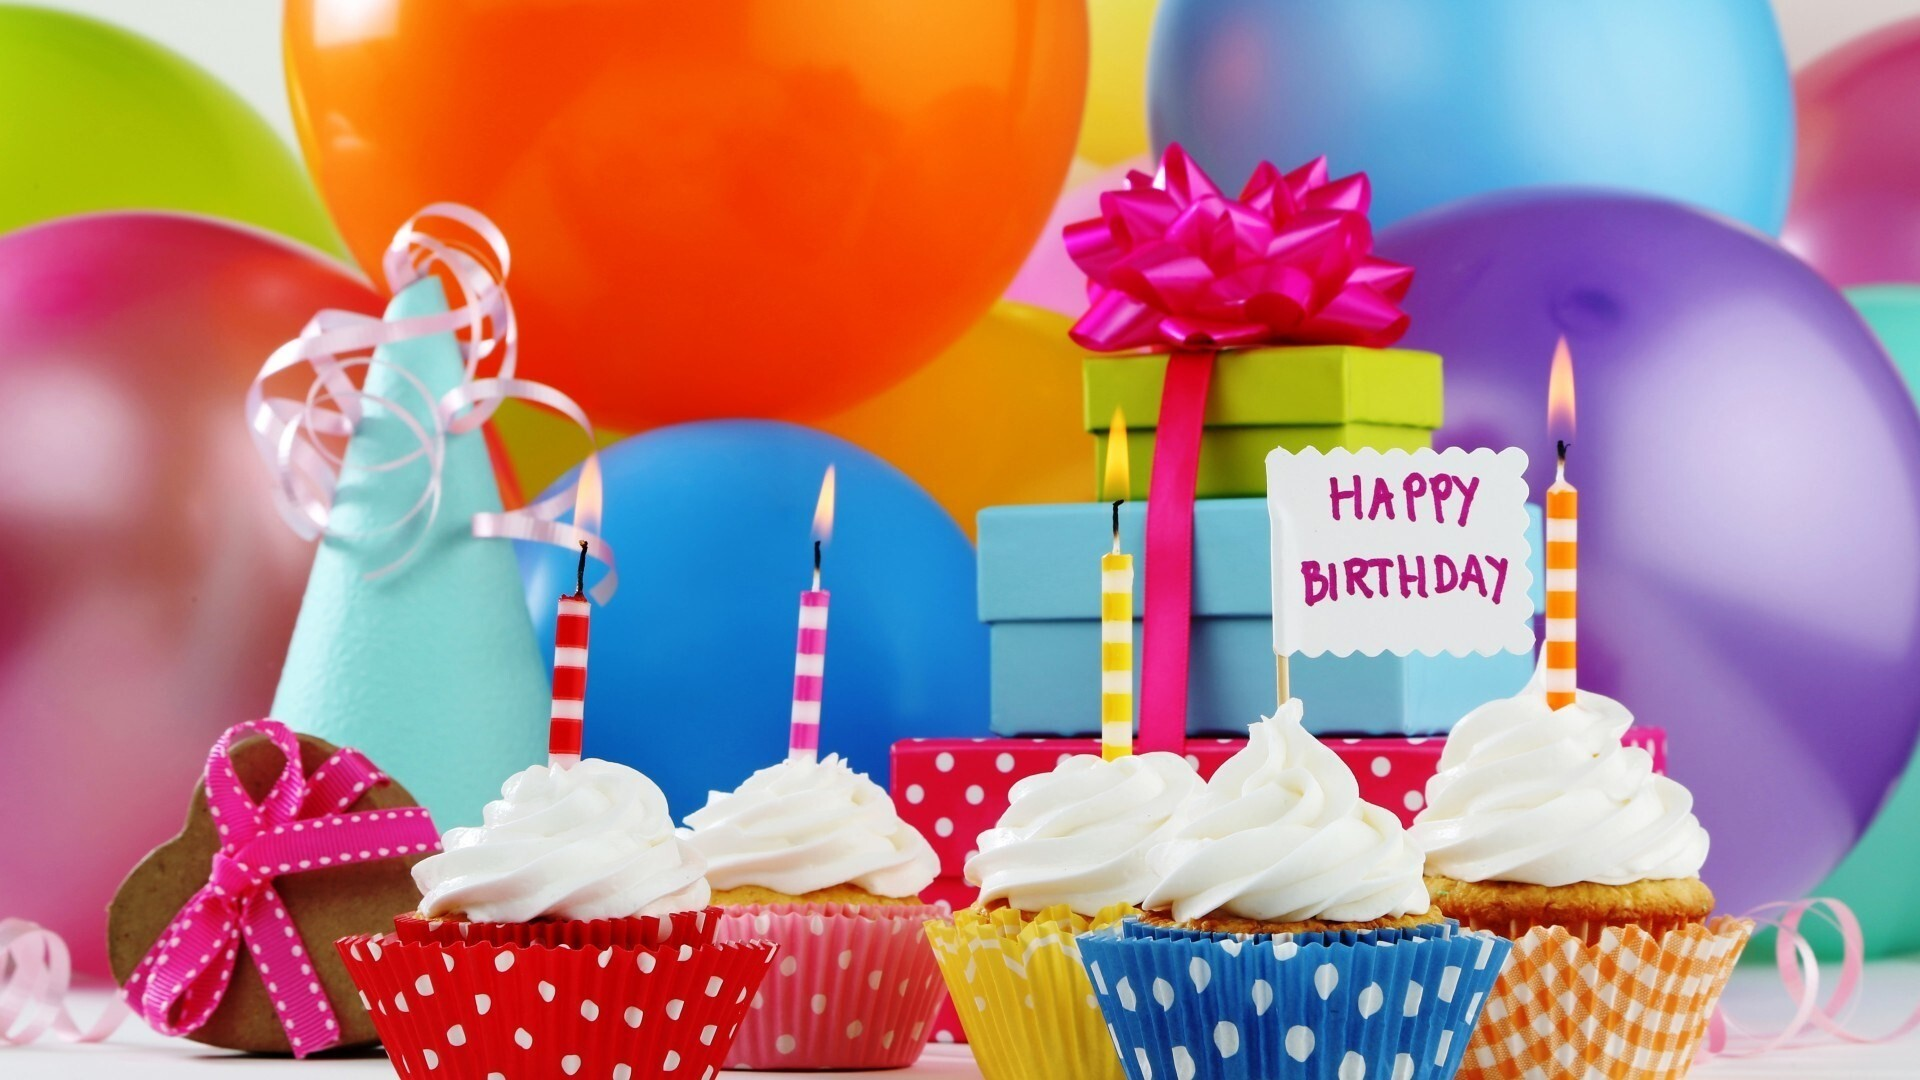 Happy Birthday Cupcake With Colorful Balloon